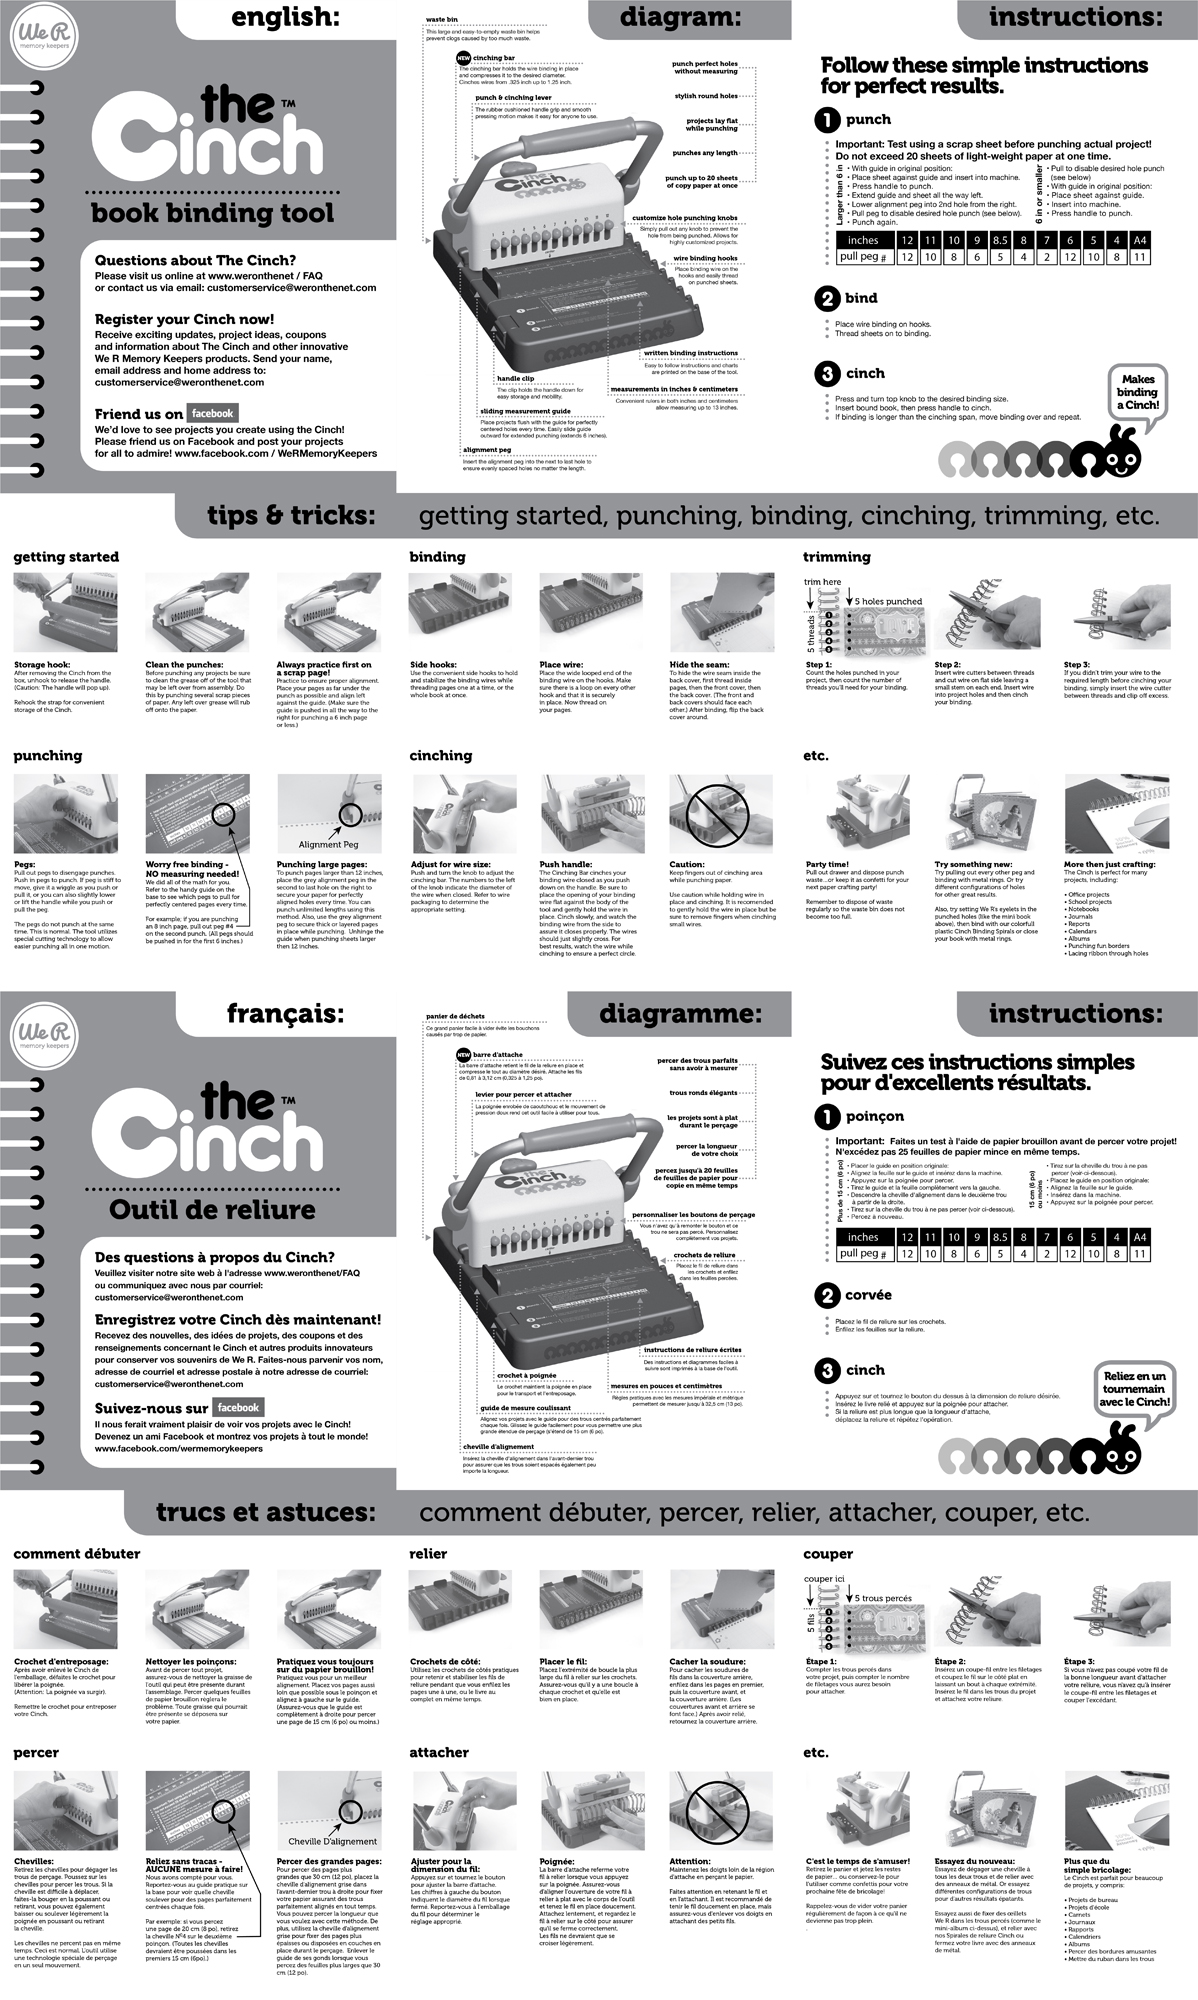 71050-9_WR_Tools_Cinch_instructions_V3